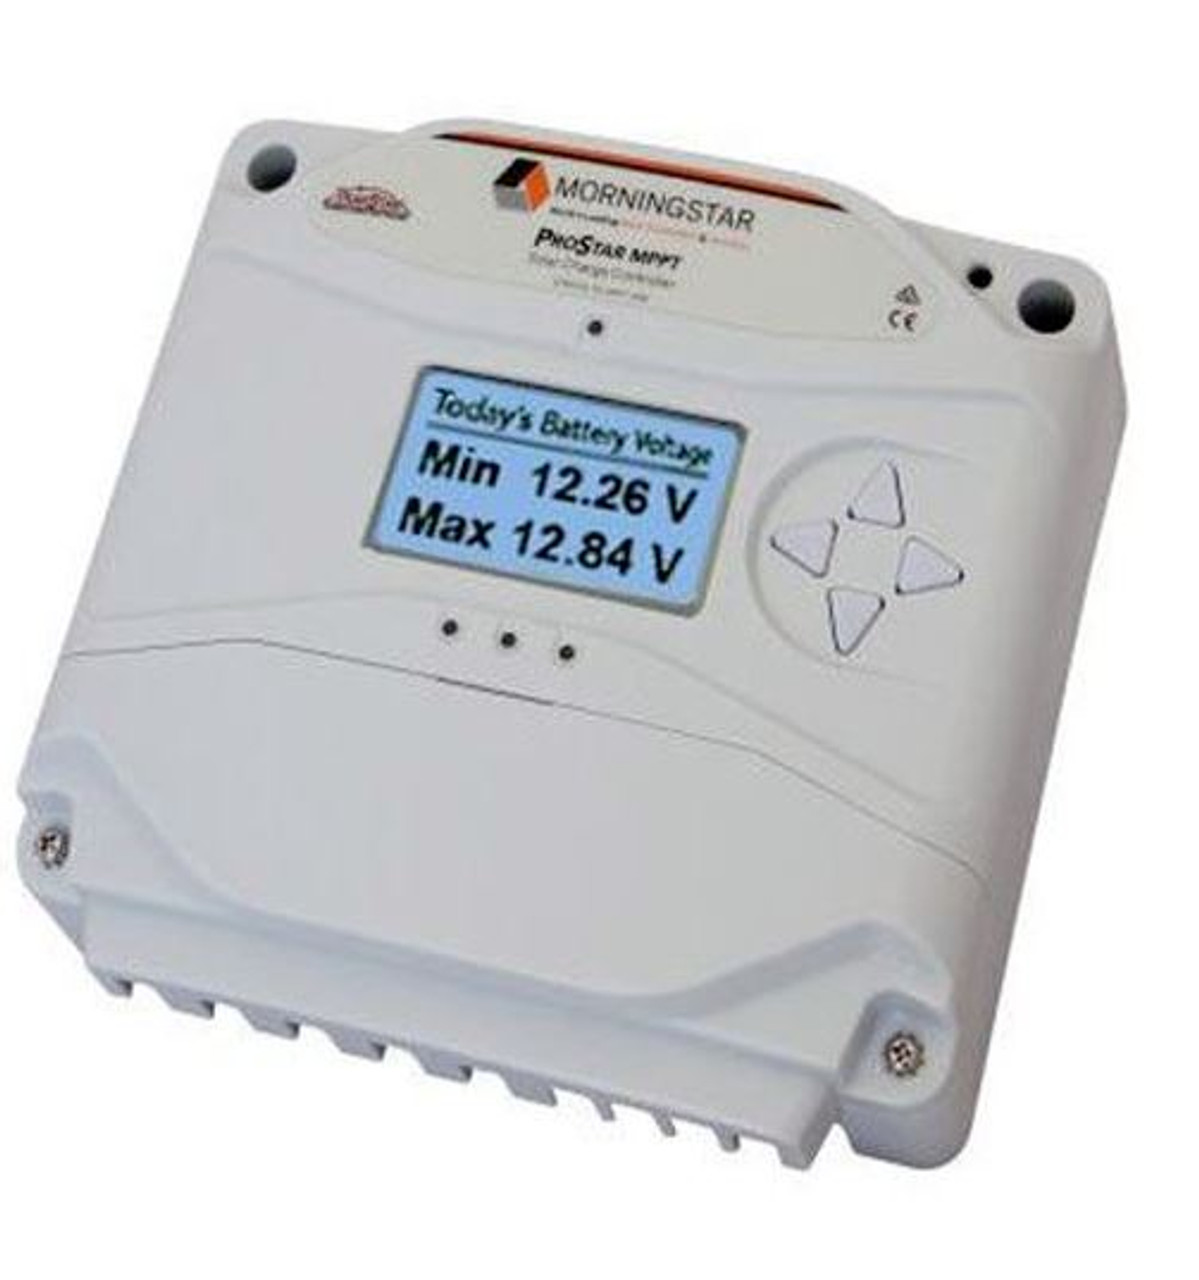 Morningstar PS-MPPT-40M ProStar MPPT Solar Charge Controller 12/24V, 40A with Meter Display